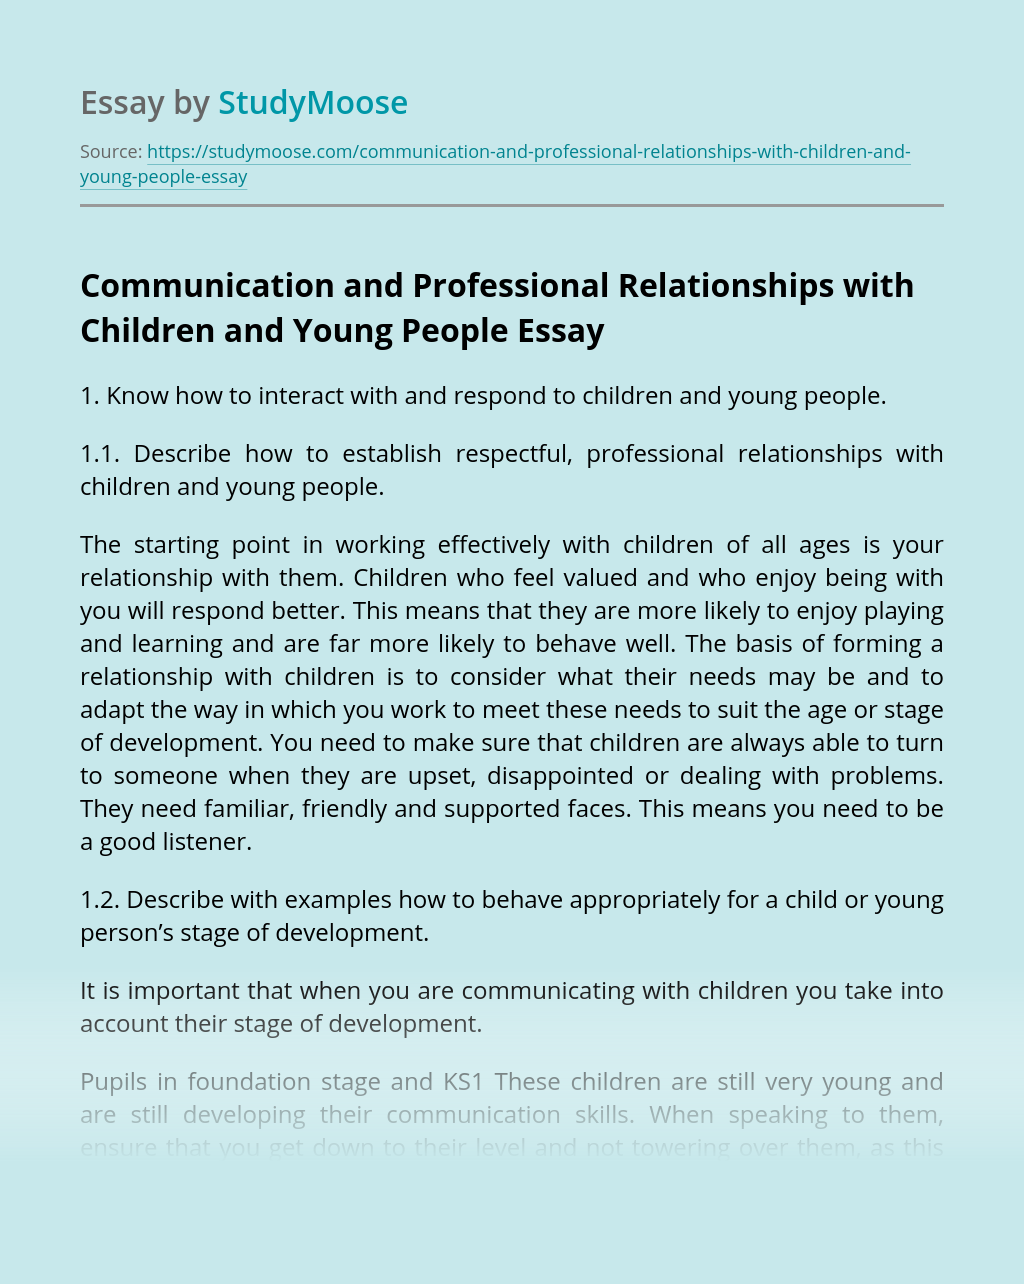 Communication and Professional Relationships with Children and Young People